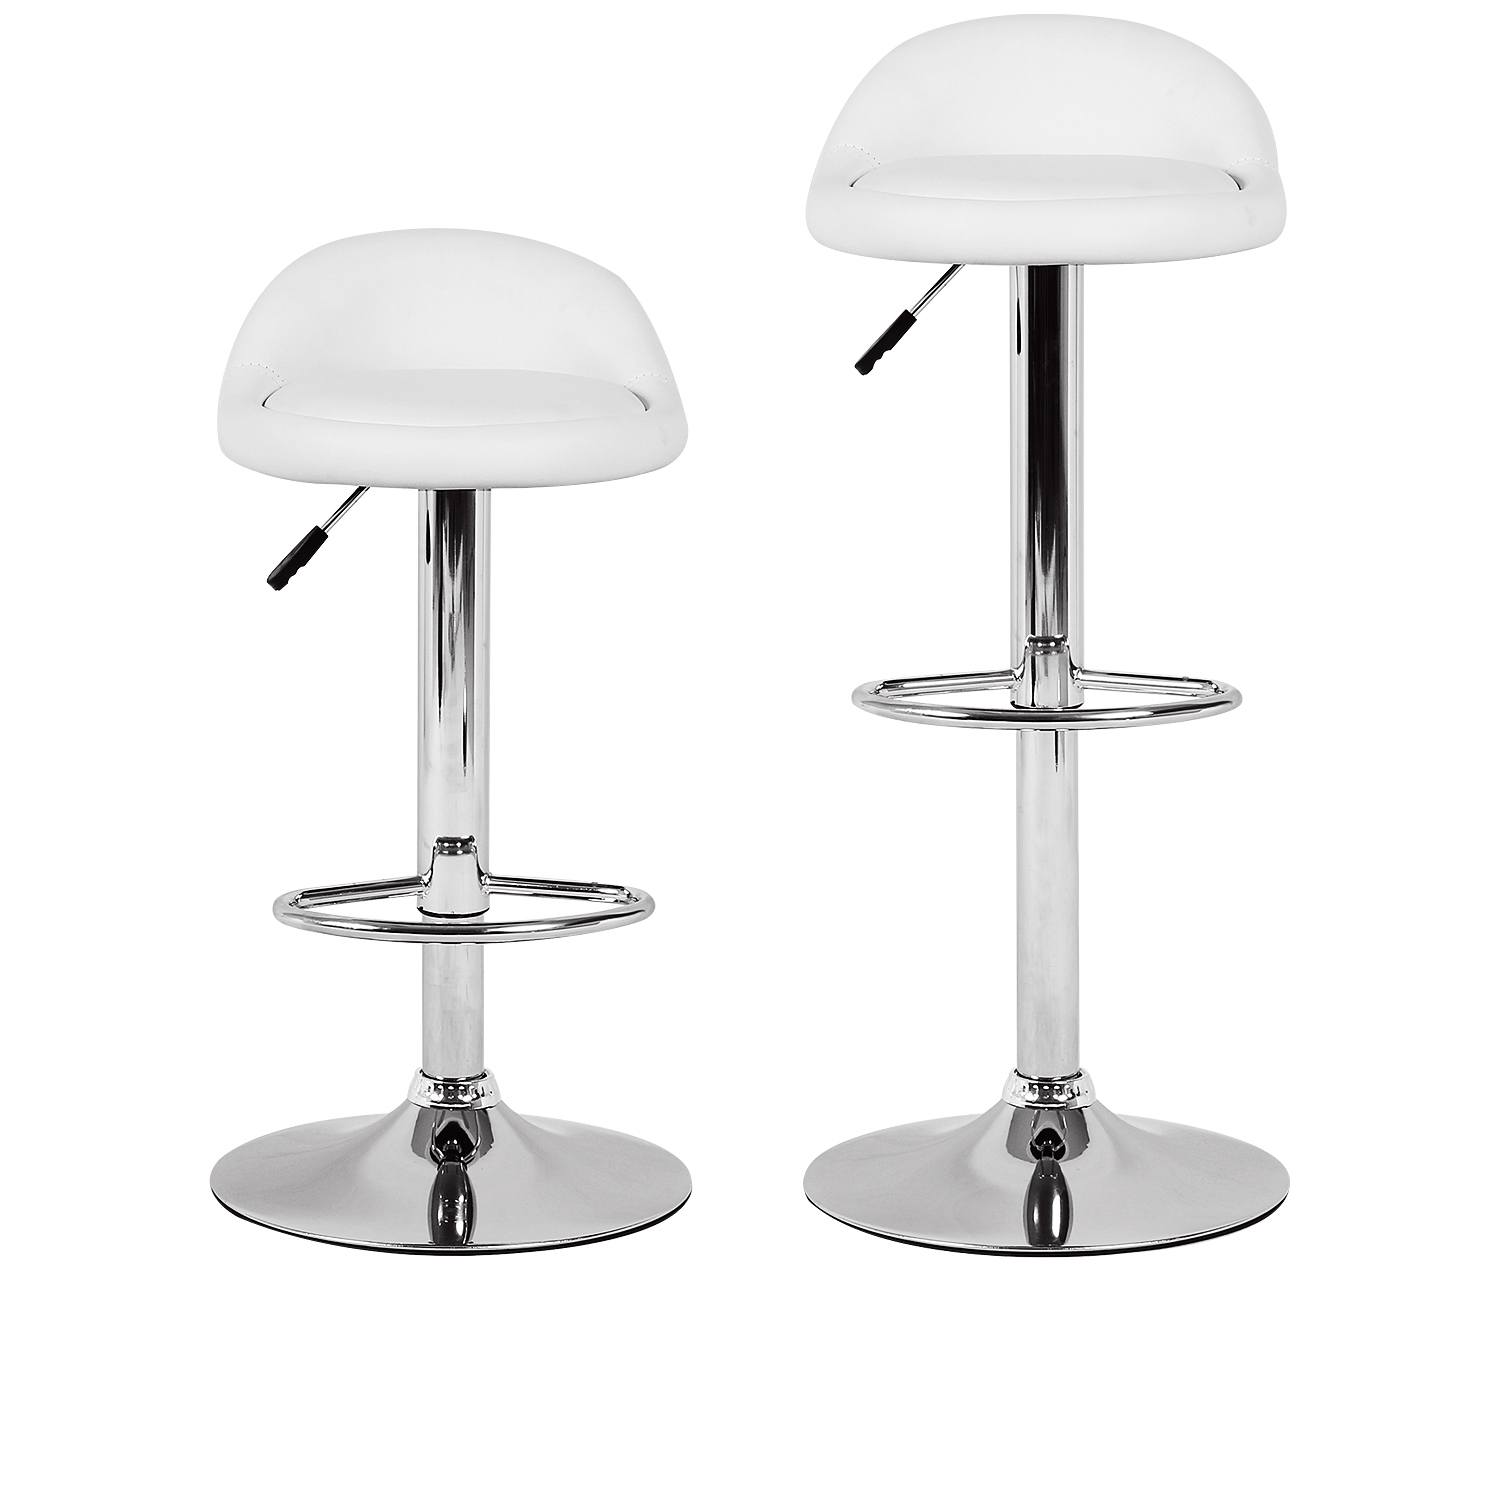 Bar Stool Height White Bar Stool Height Adjustable Swivel Metal Counter Stools W Chrome Base Set Of 2